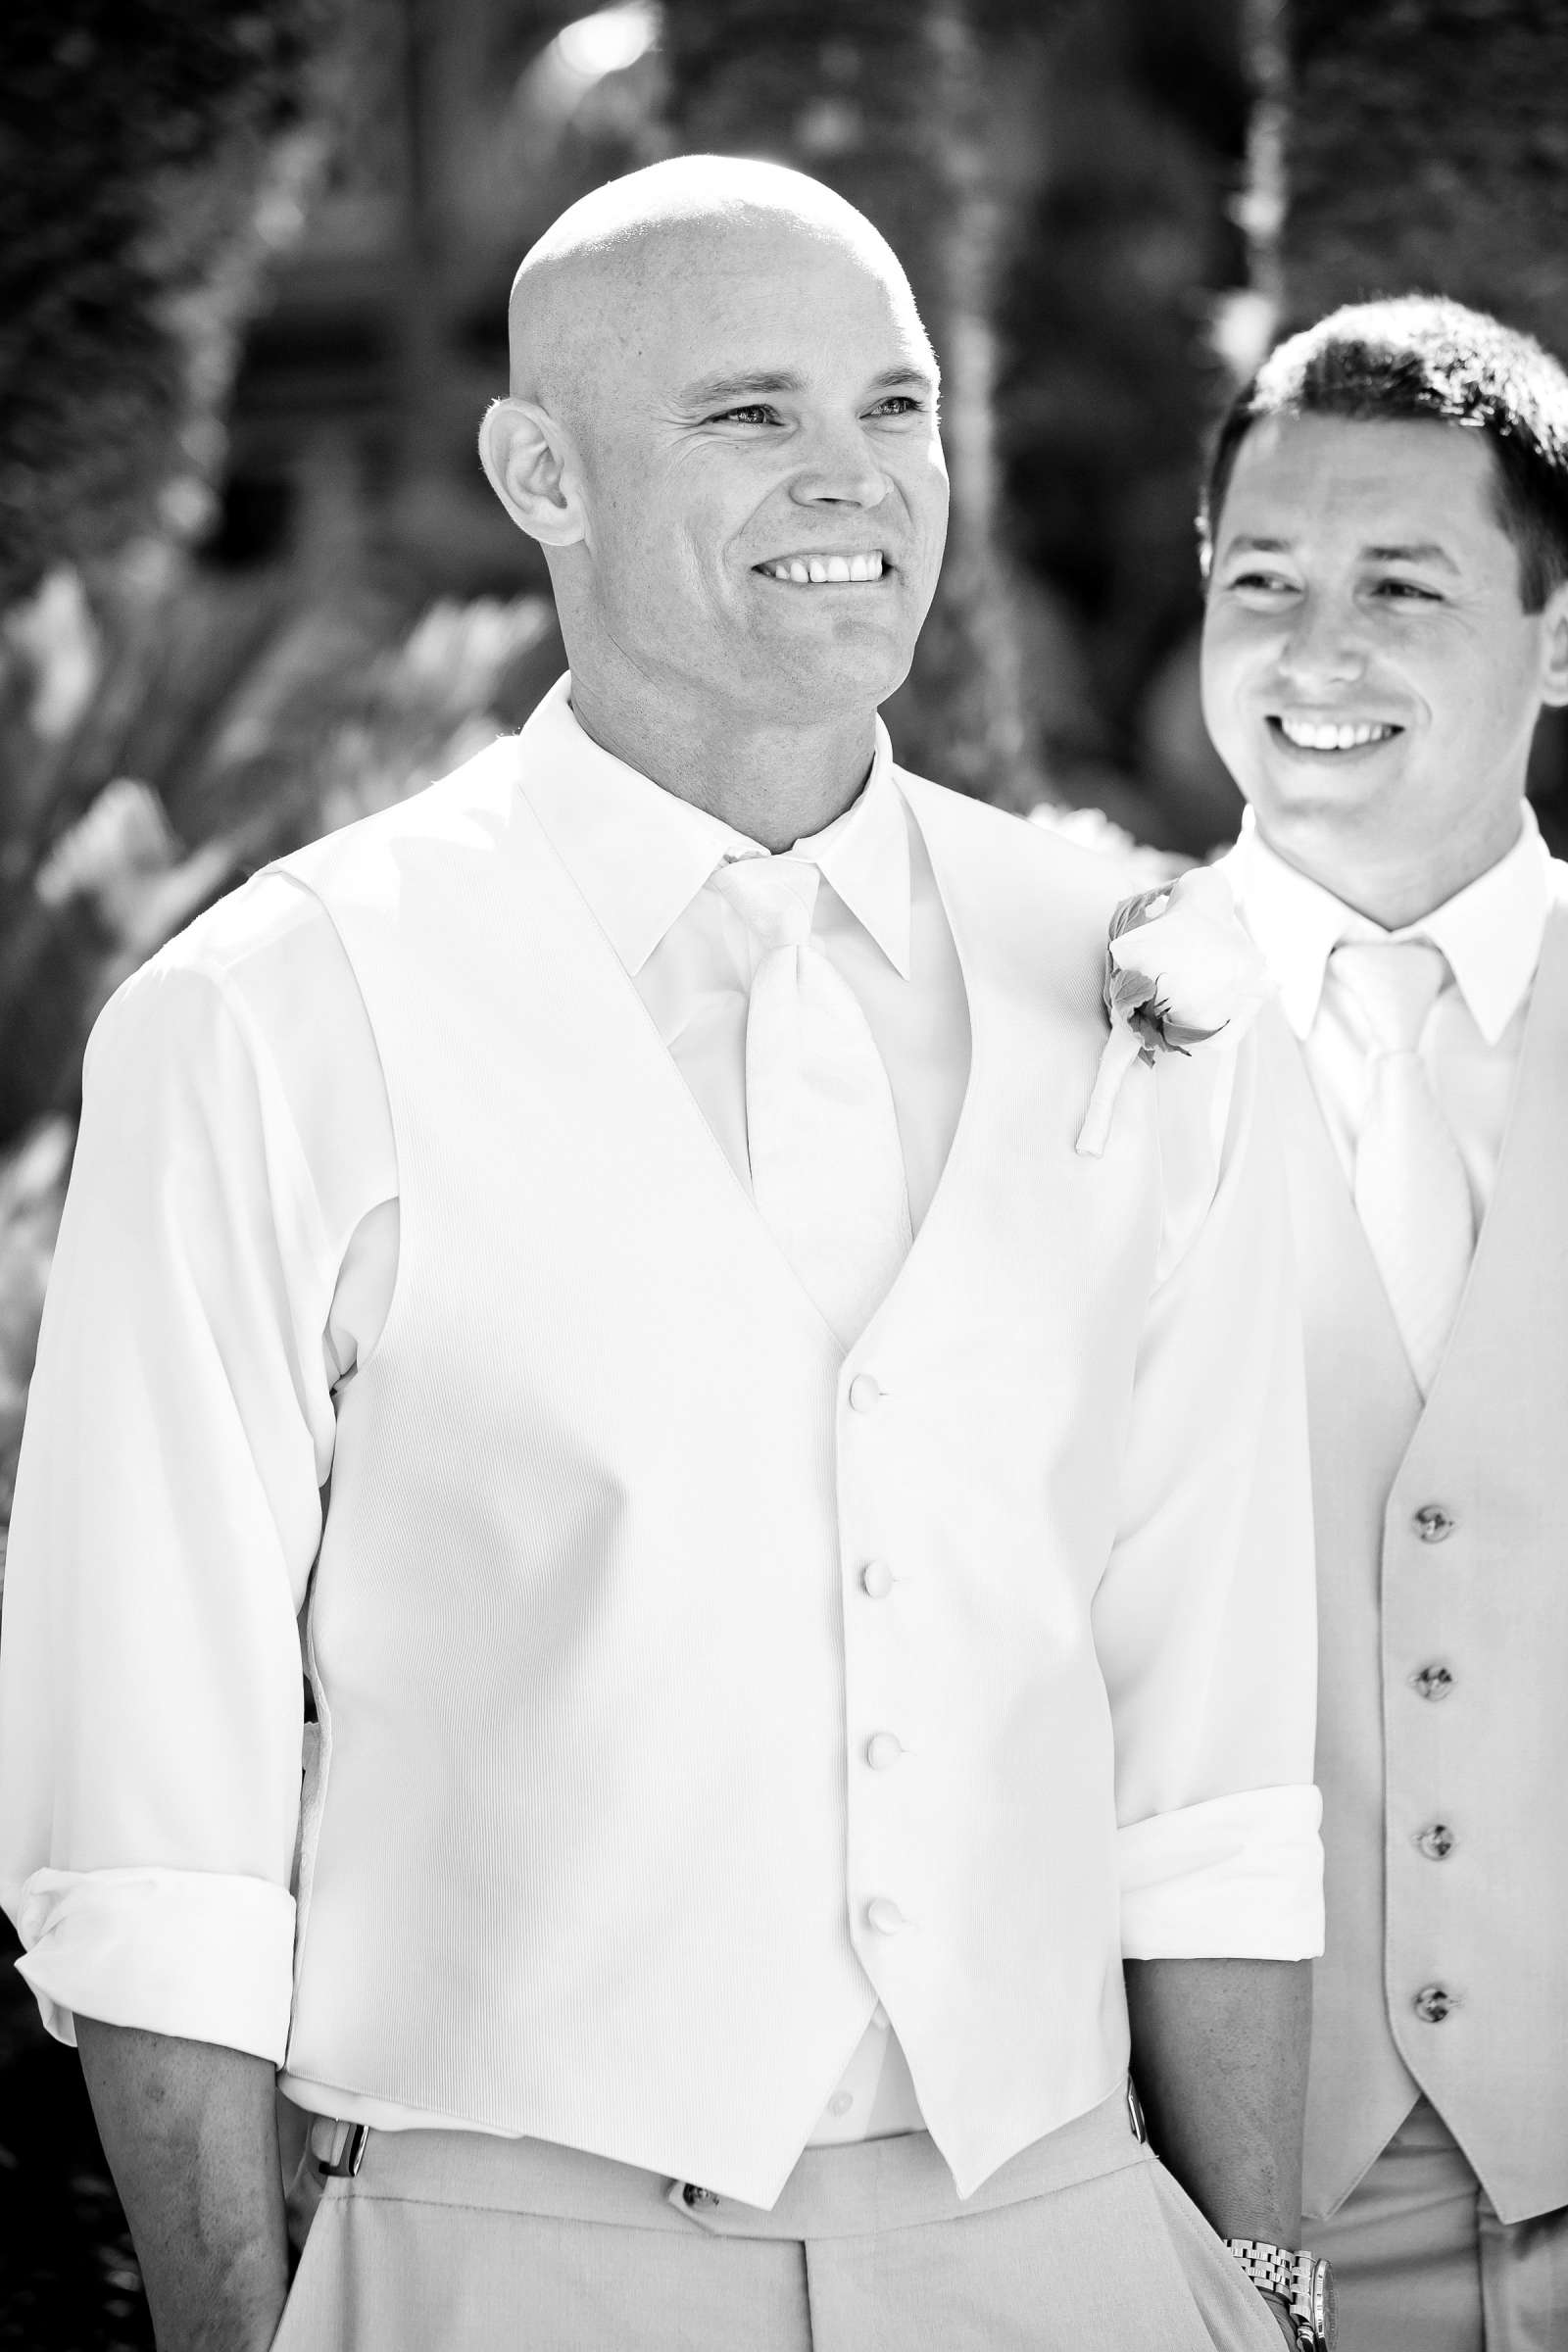 La Jolla Shores Hotel Wedding coordinated by I Do Weddings, Stefanie and Craig Wedding Photo #373306 by True Photography